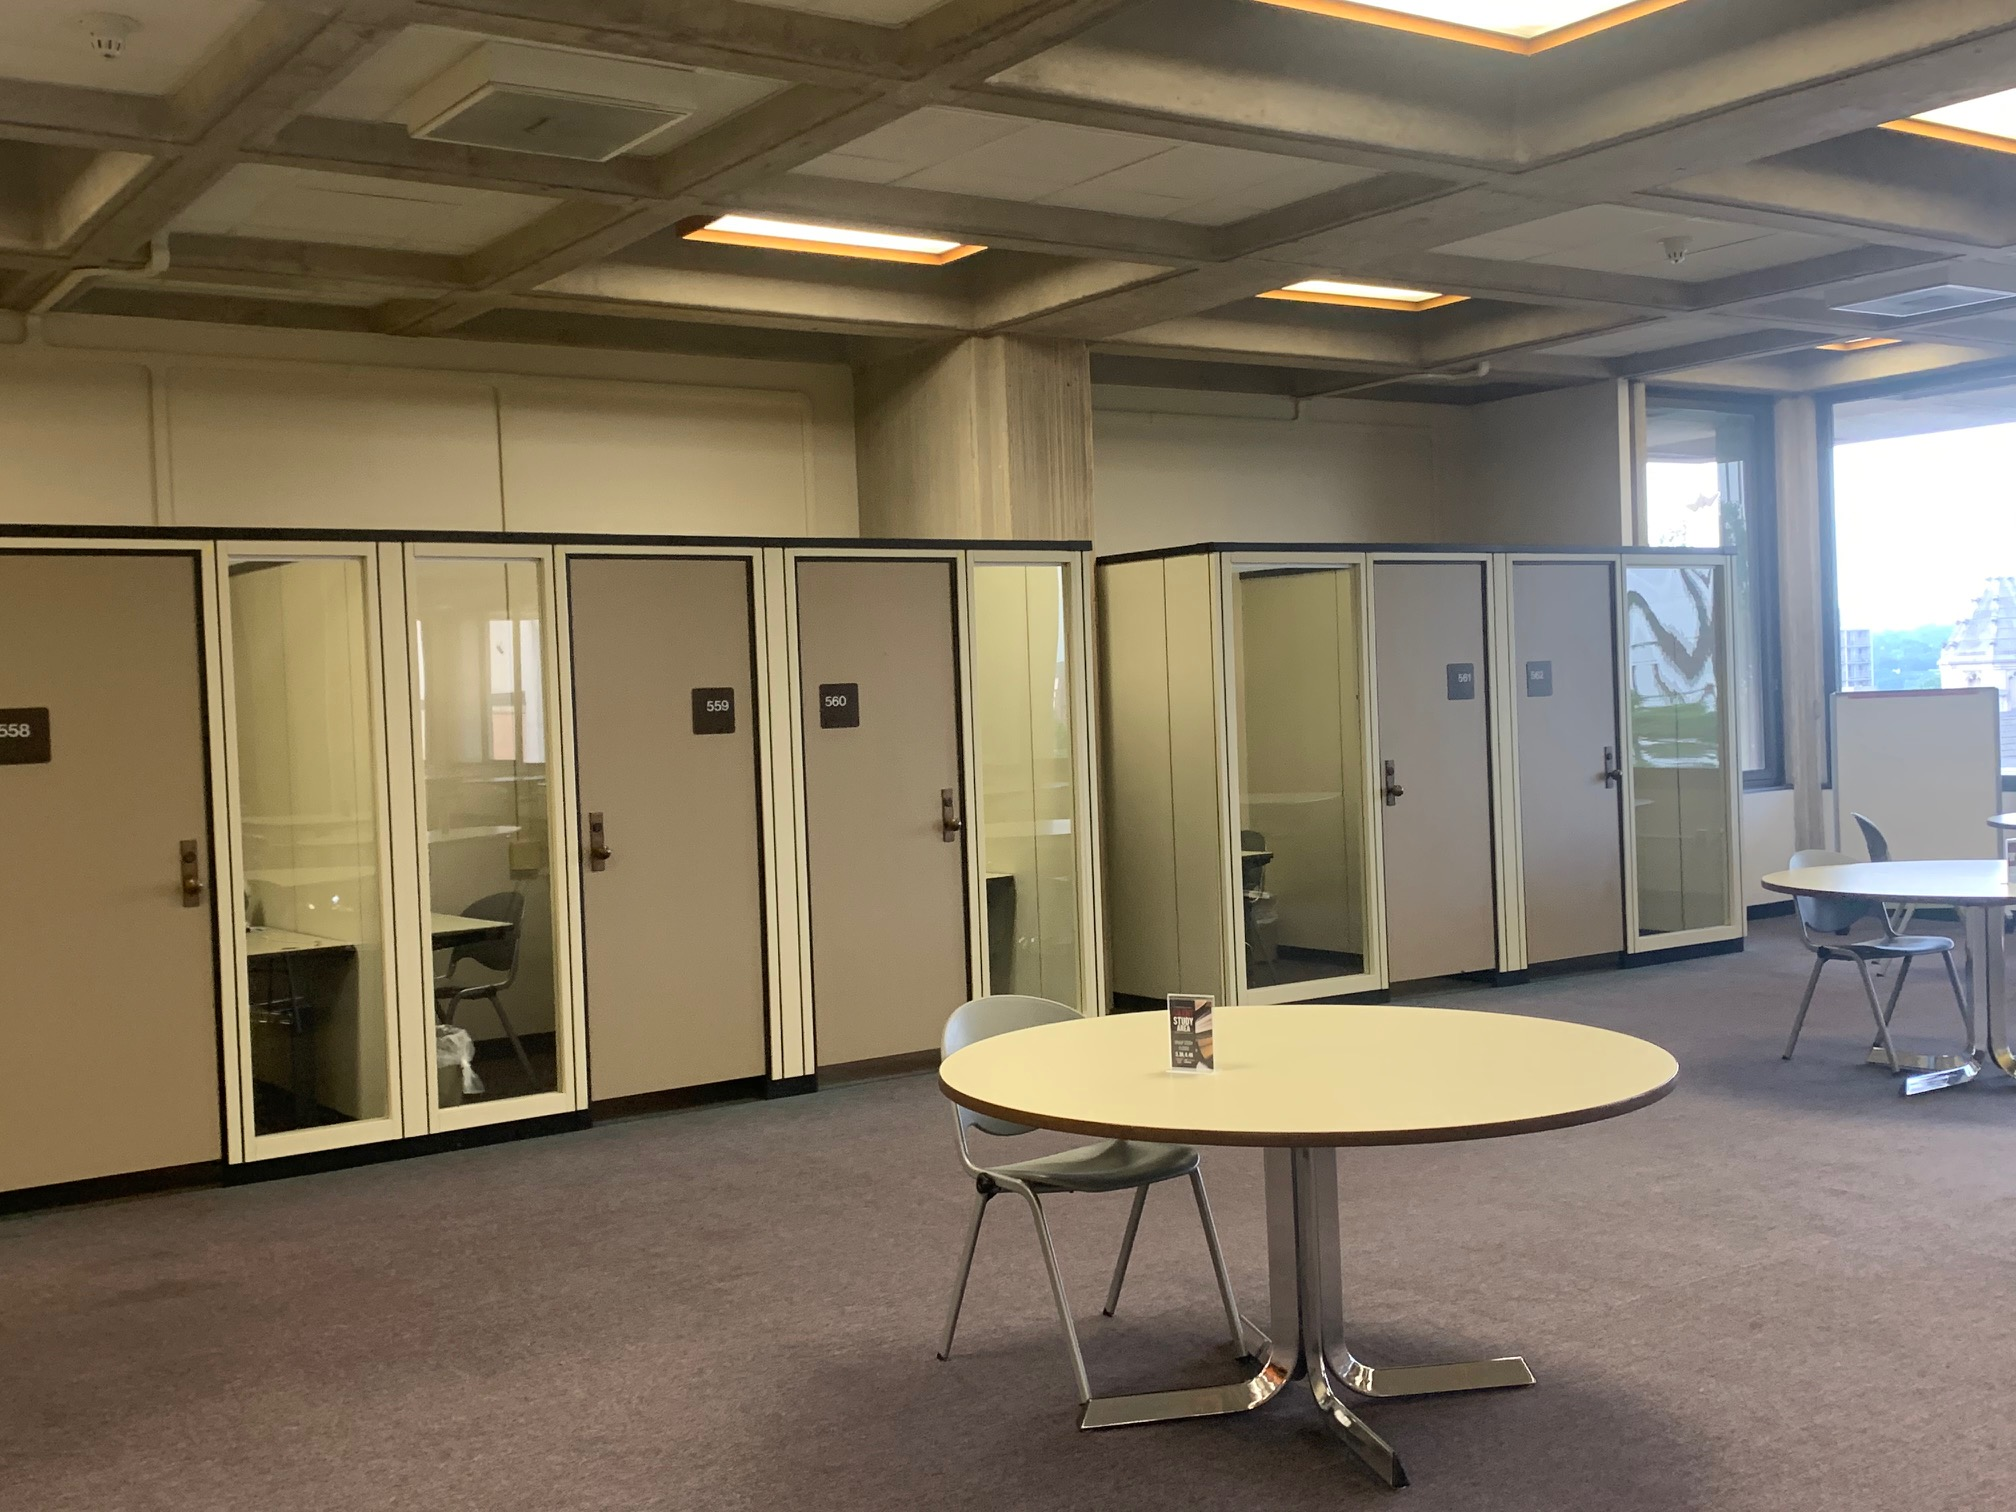 Photo of Maag Library Study Carrels